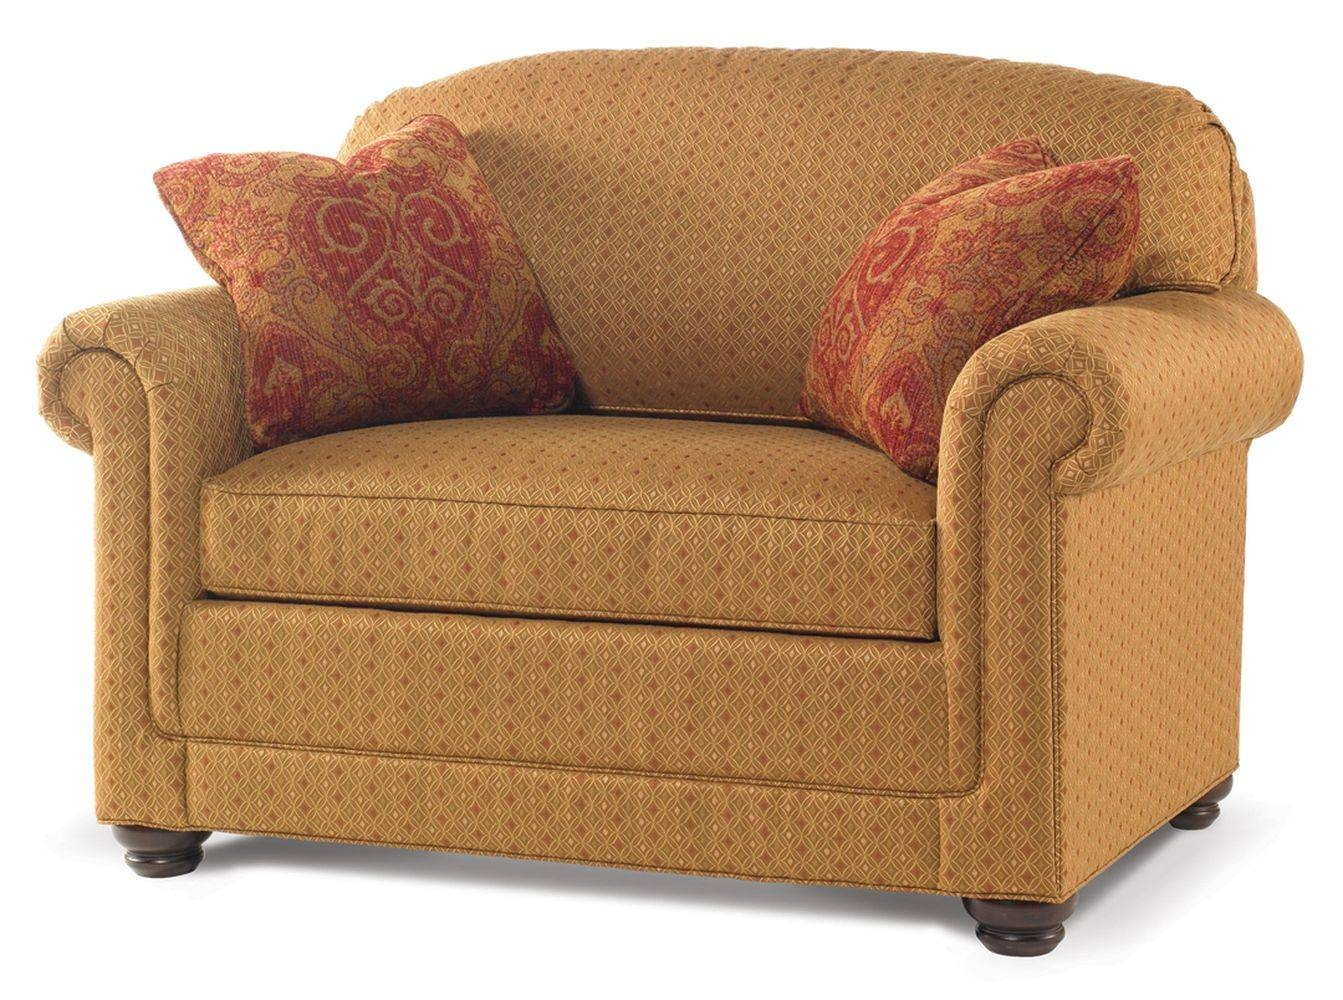 Small Chairs And Sofas - Thesecretconsul pertaining to Small Sofas and Chairs (Image 7 of 15)